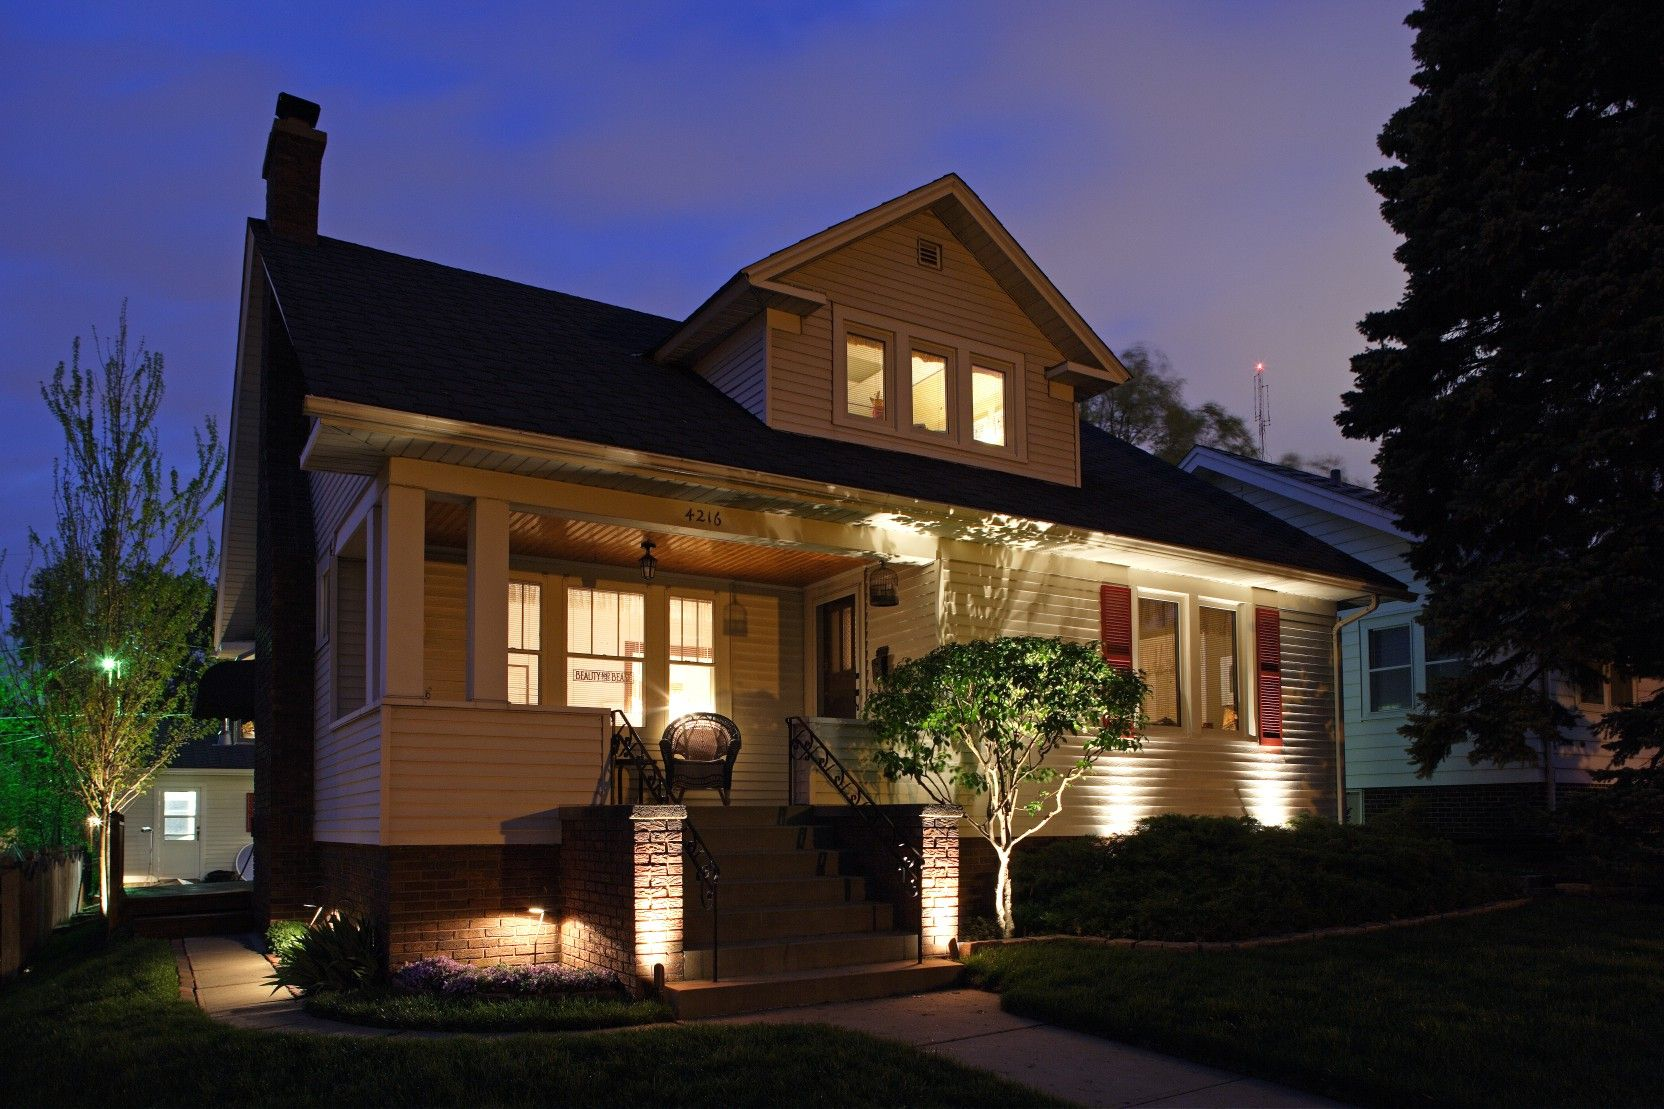 custom landscape lighting ideas. McKay Lighting Offers Custom Designed Landscape Systems For Homes And Businesses In Omaha, Lincoln, Nebraska Des Moines, Iowa. Ideas